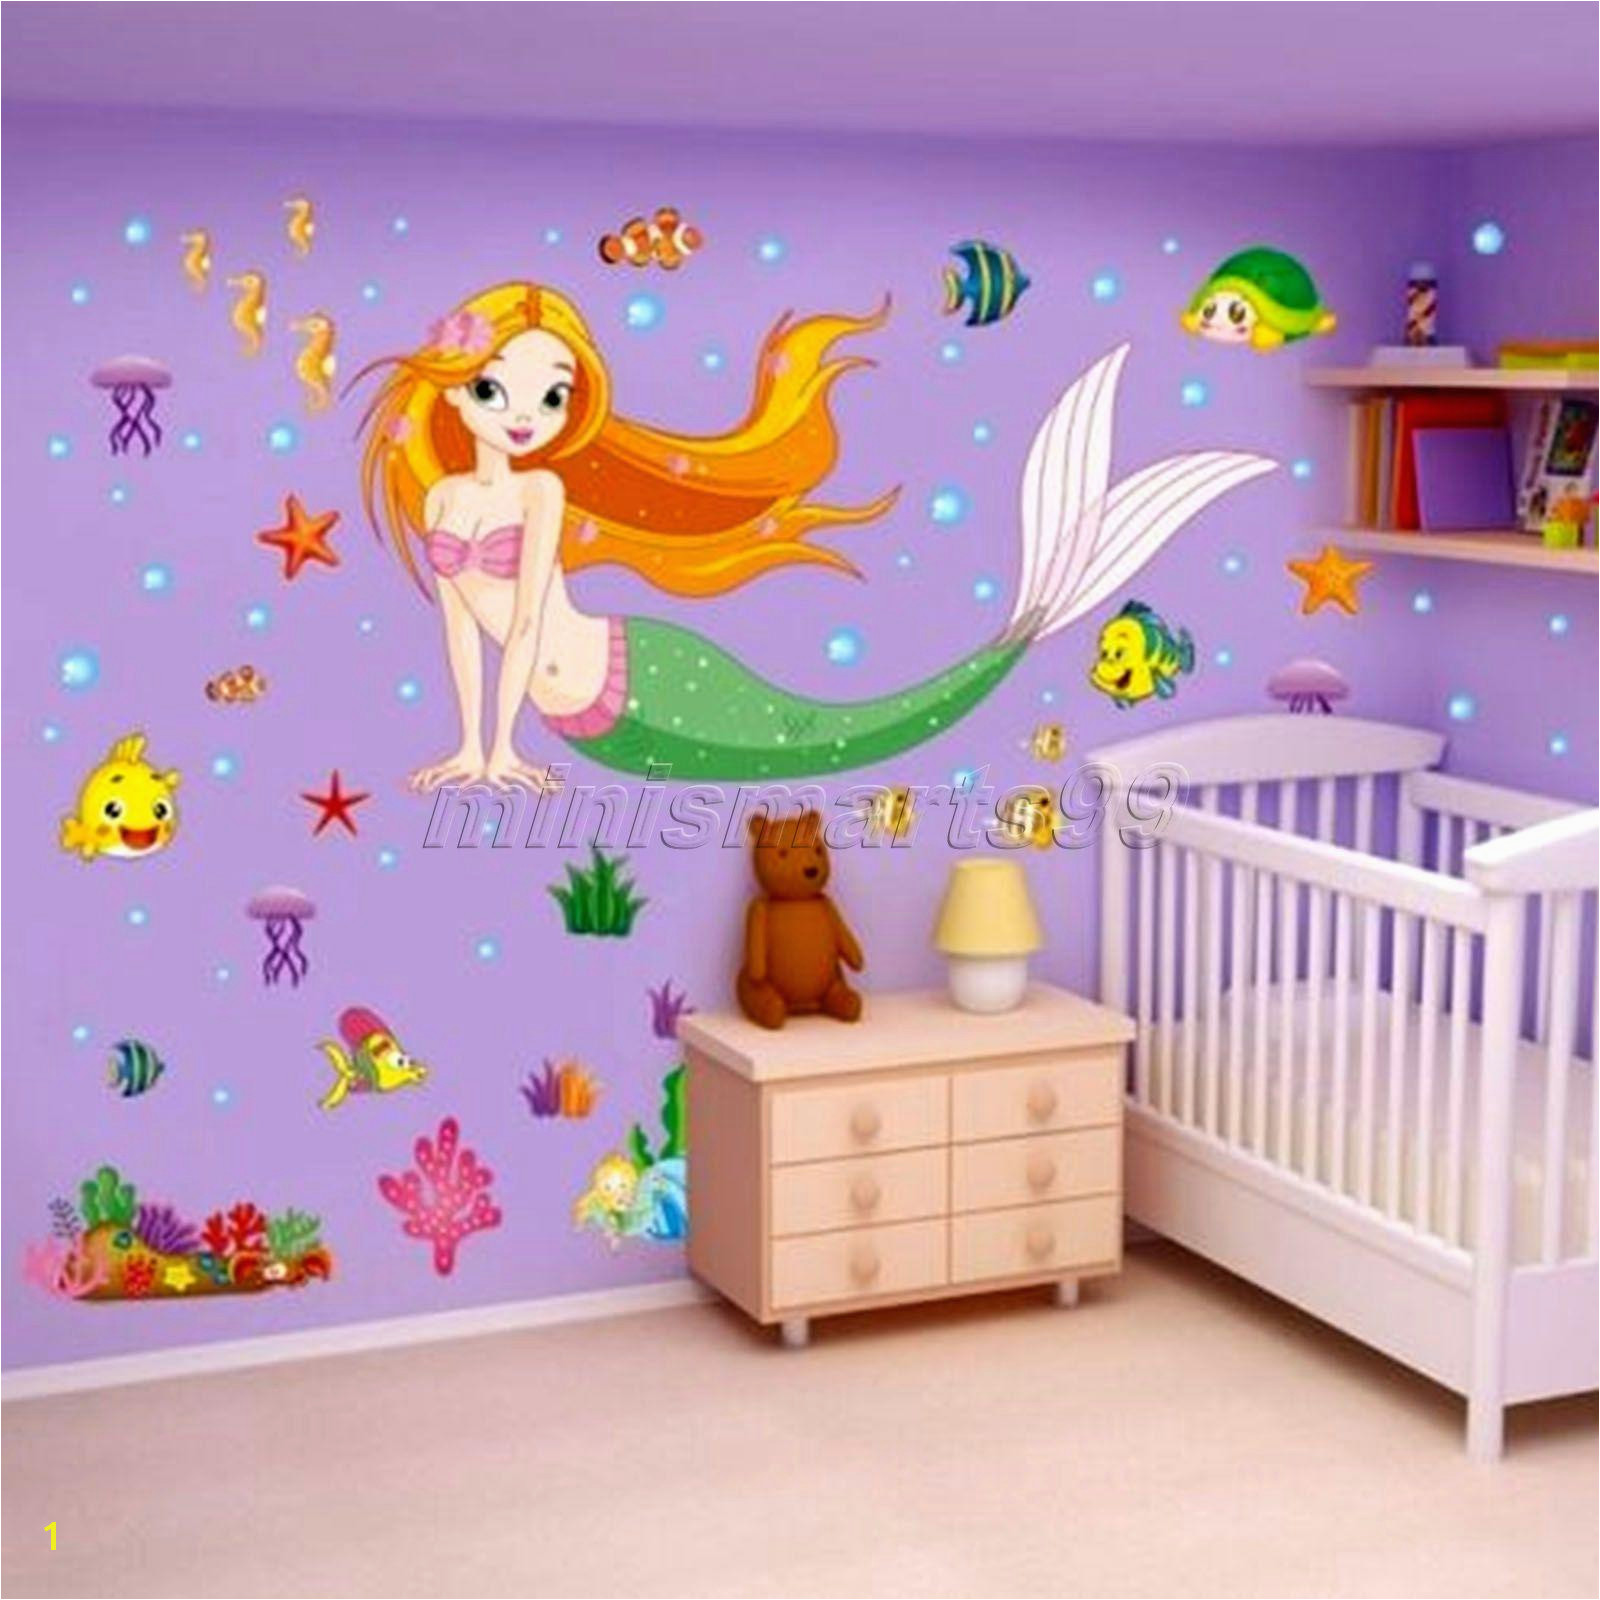 Wall Stickers Window Wall Cartton The Mermaid Princess Vinyl Wall Stickers Removable 3d Art wall stickers